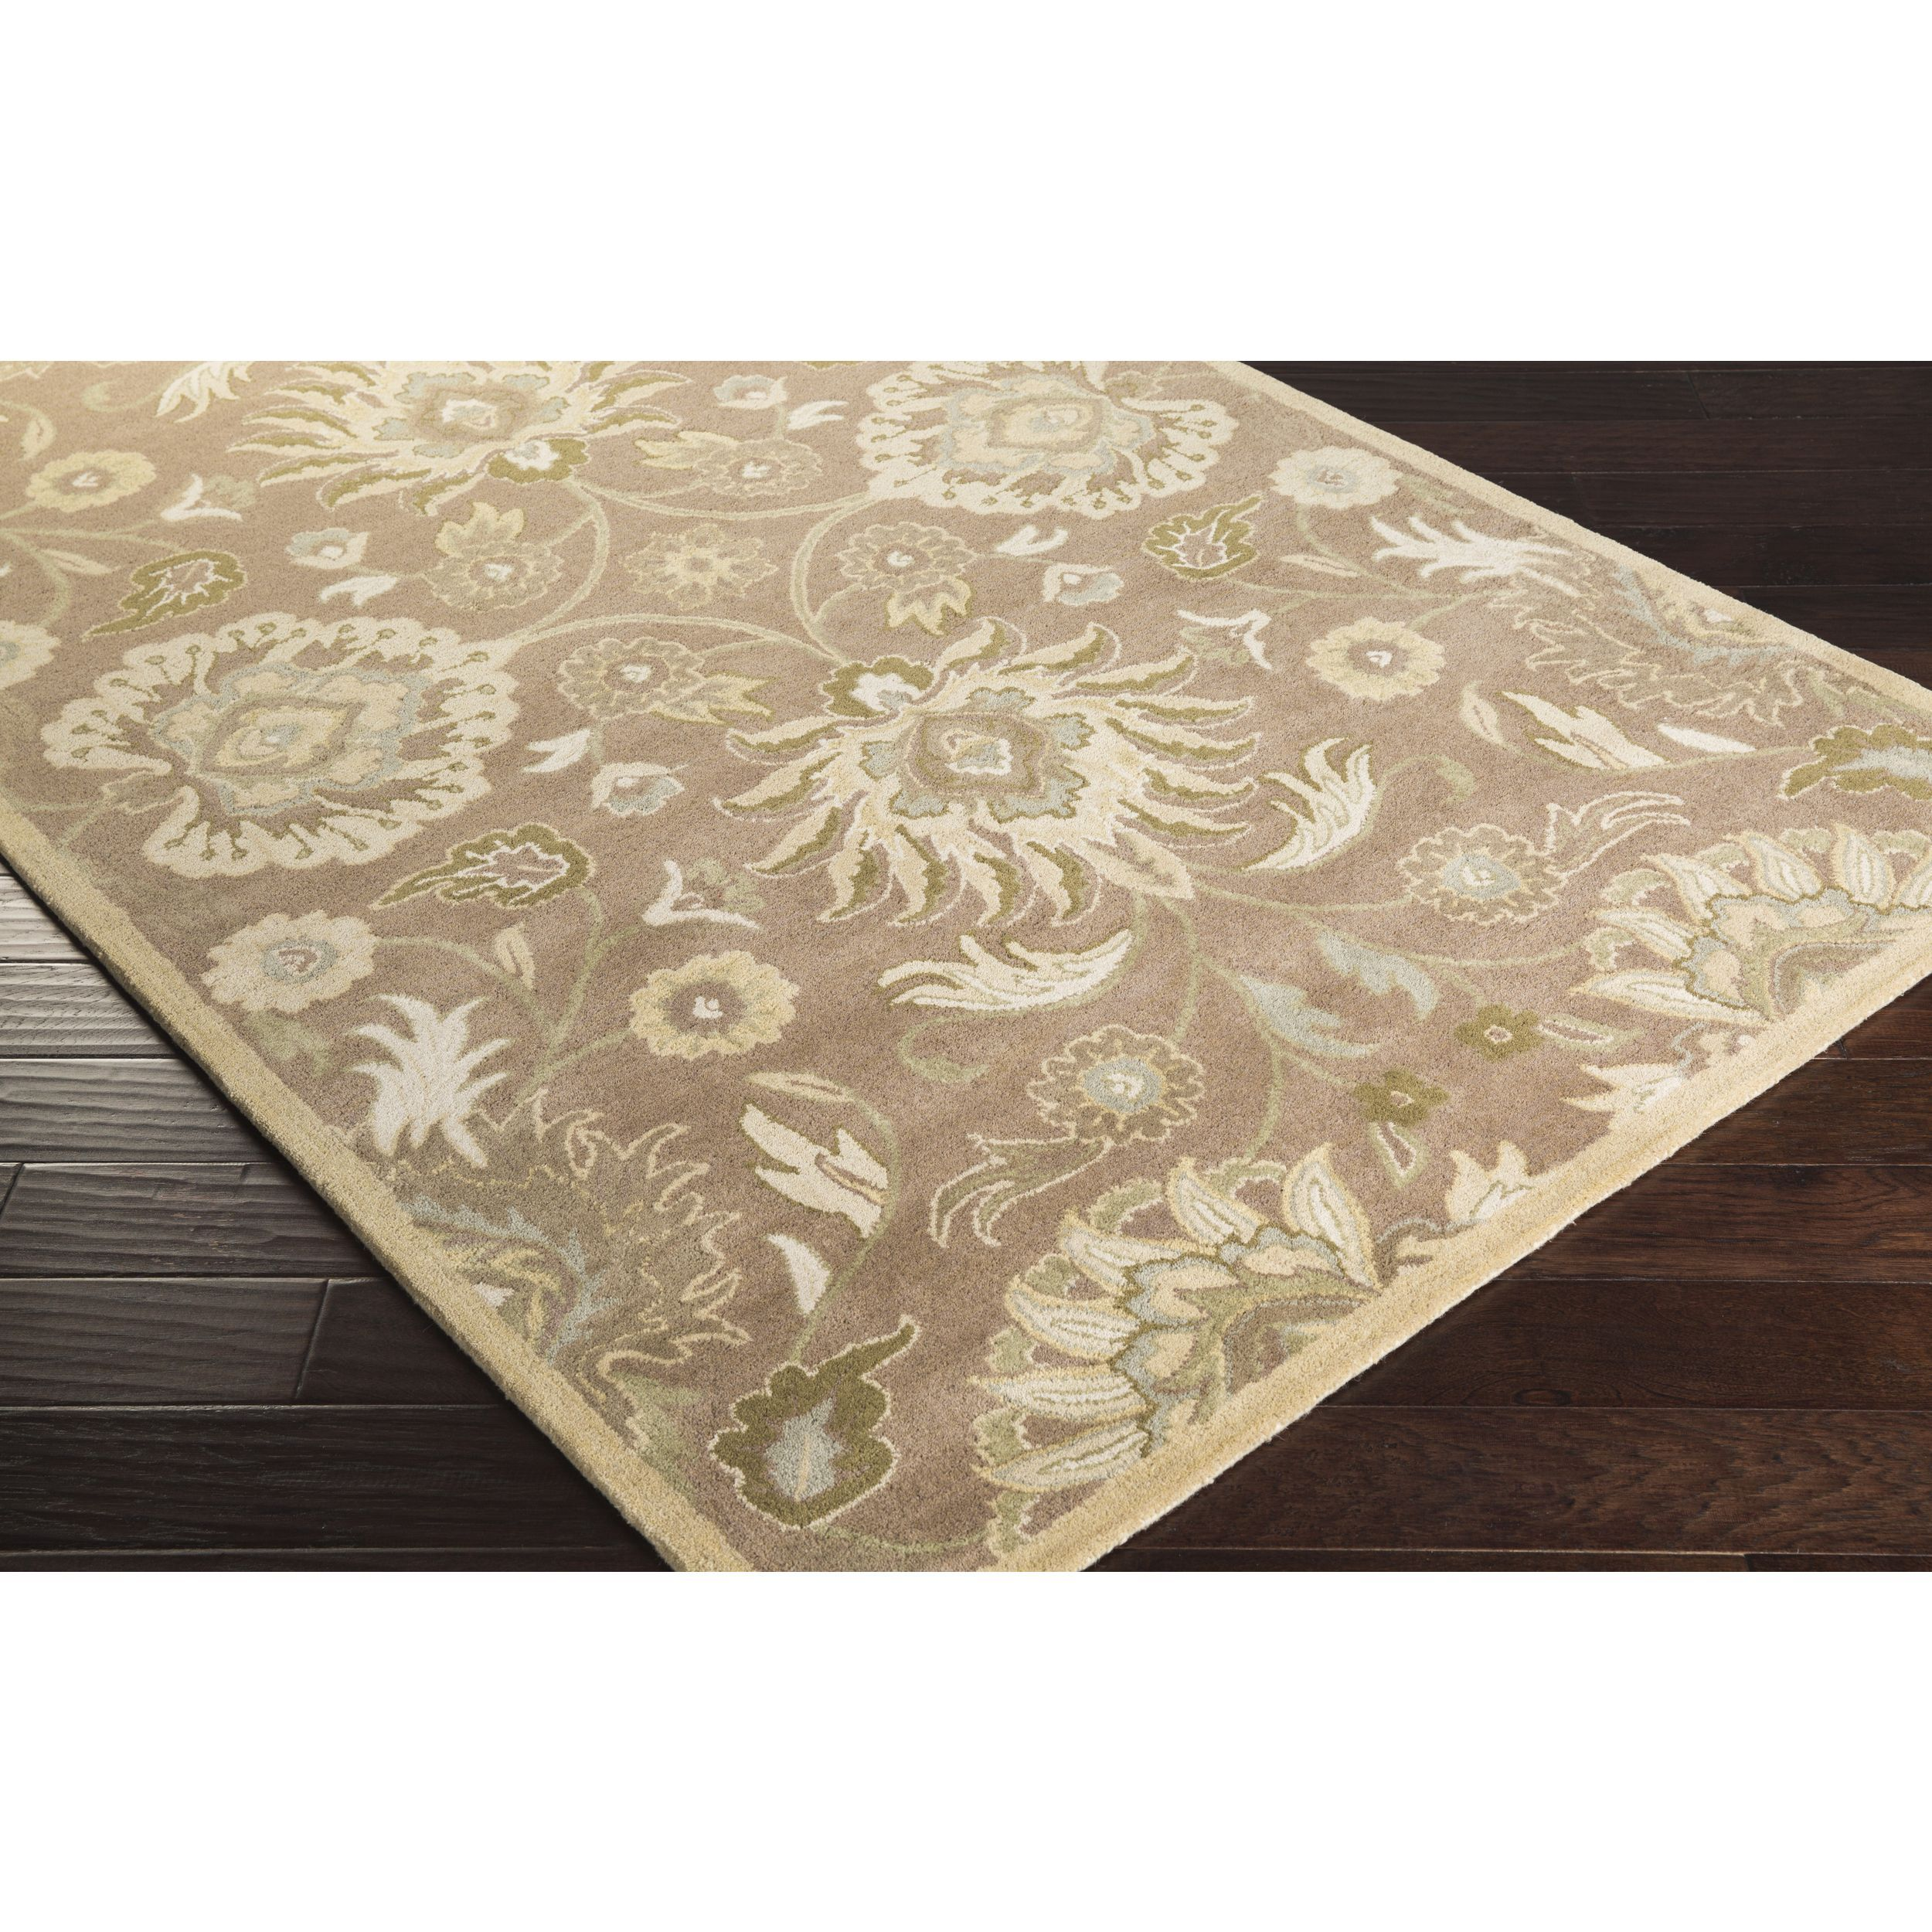 Bring luxury to your home with this traditional area rug. Hand-tufted with wool, this floral designed rug will add a pop of color and the finishing touch to your décor.